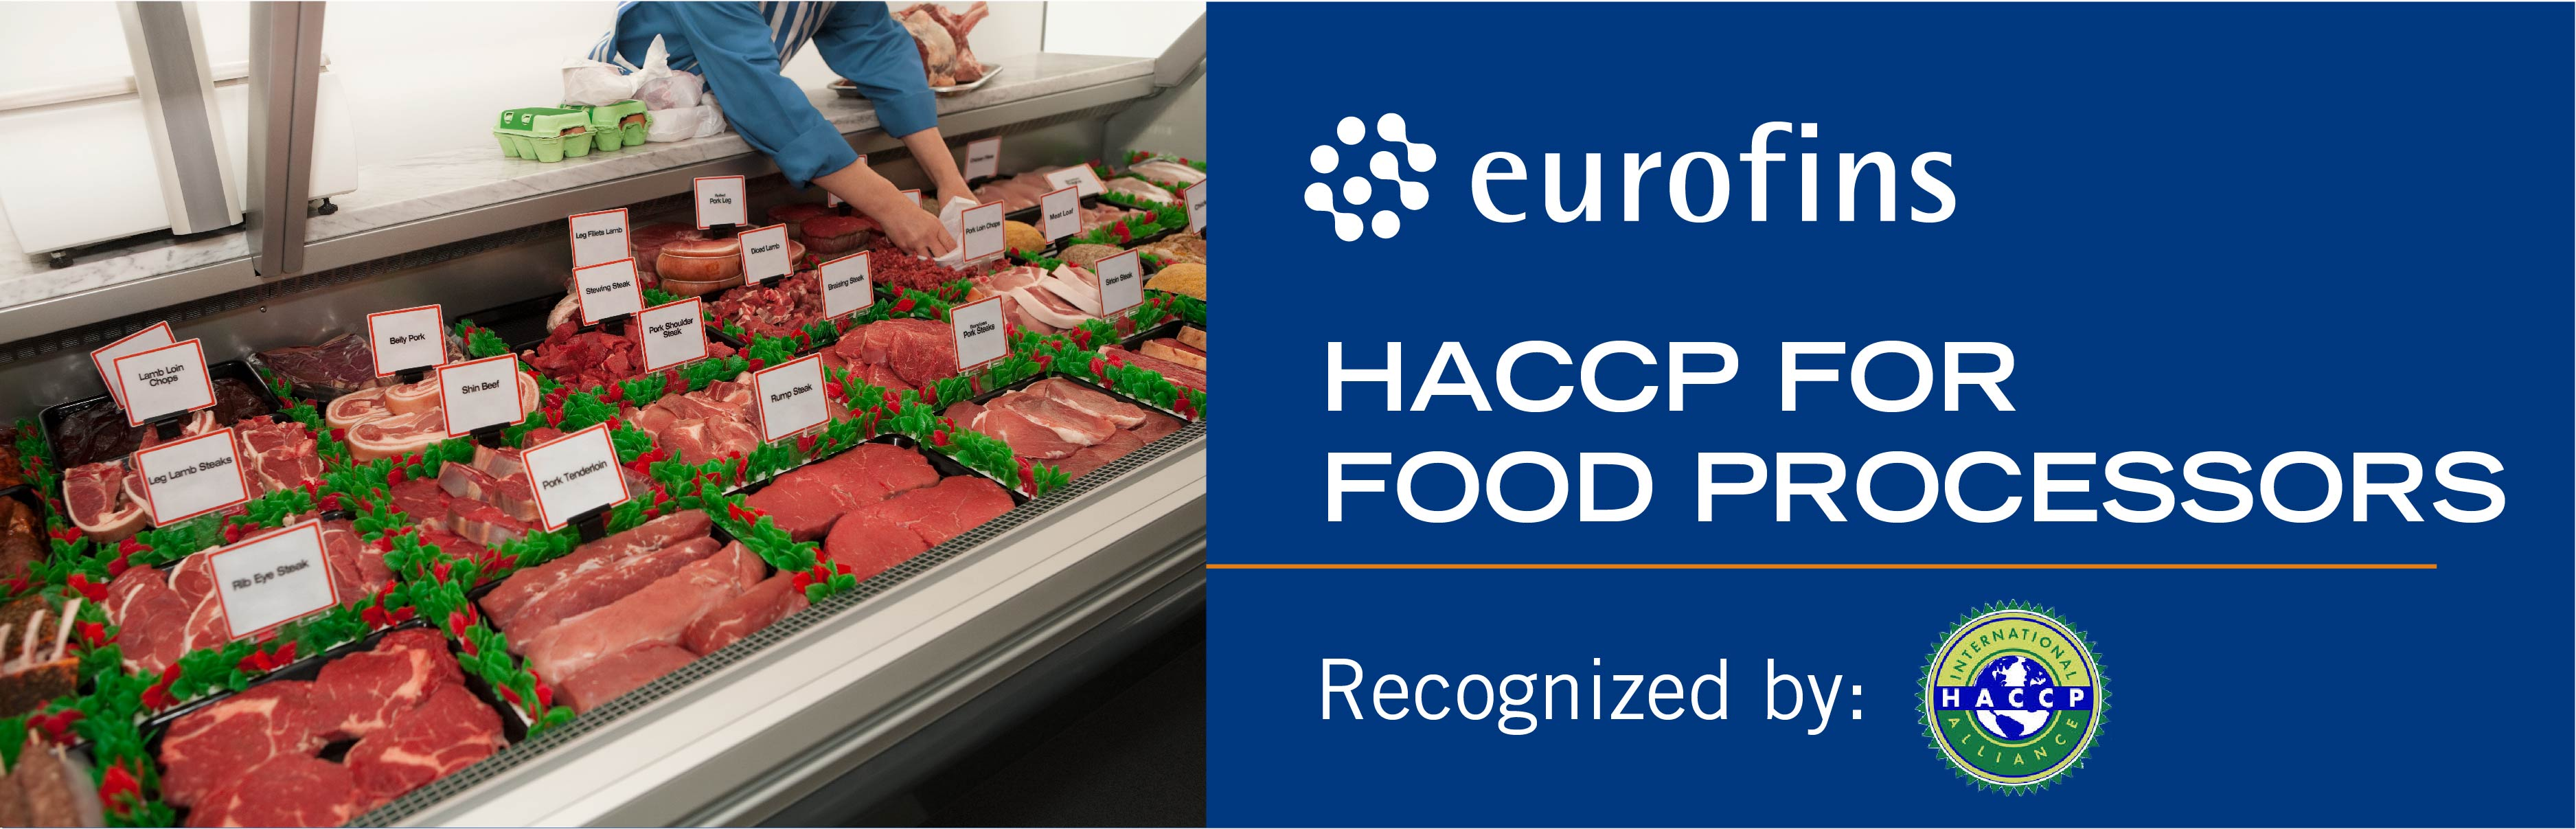 HACCP For Food Processors